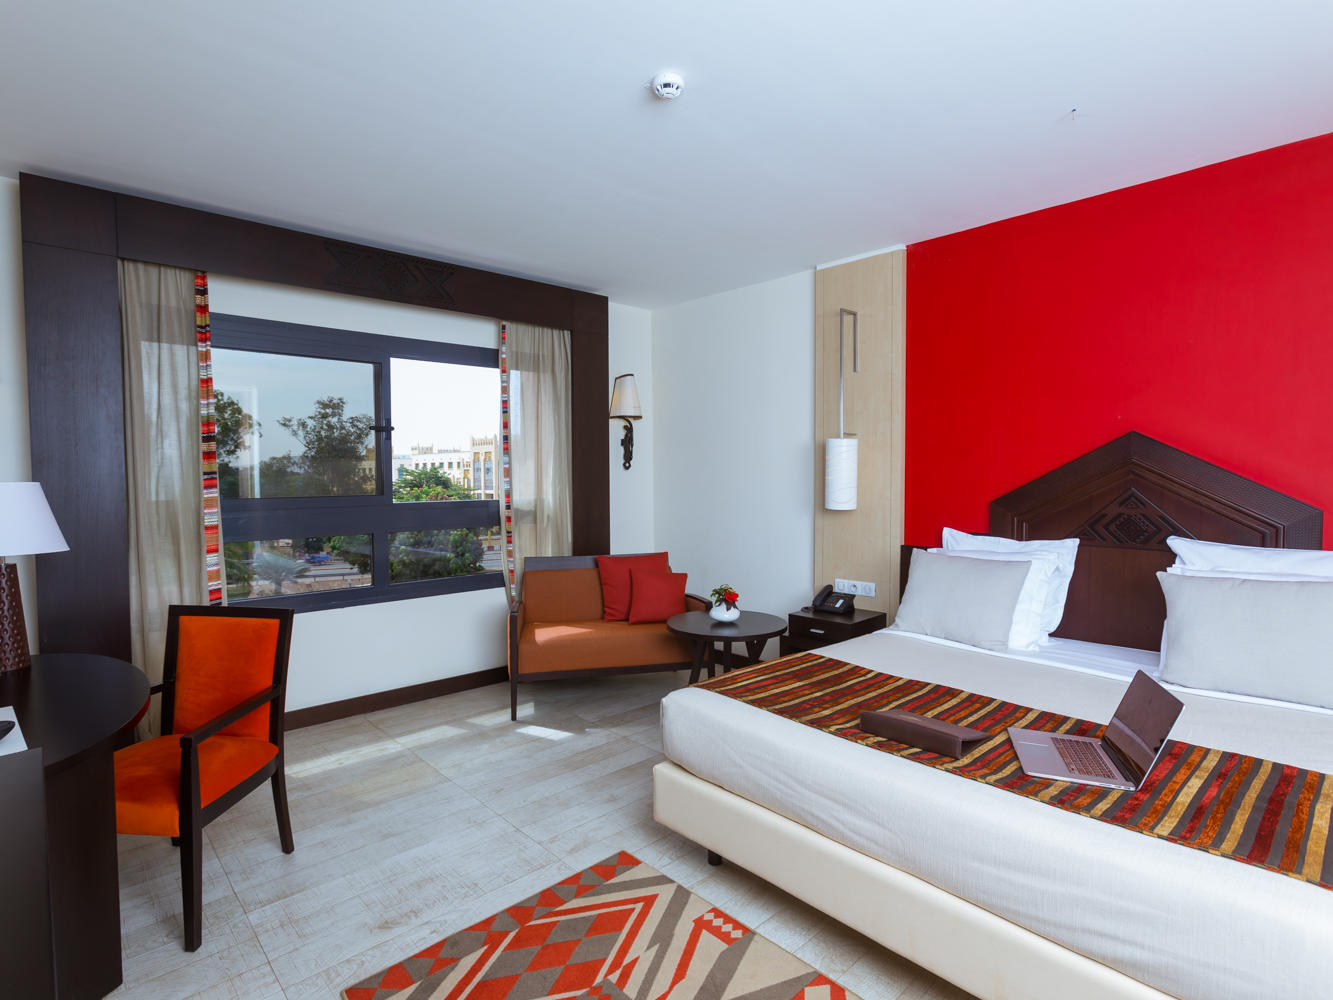 Superior room in Azalai hotel with a big window